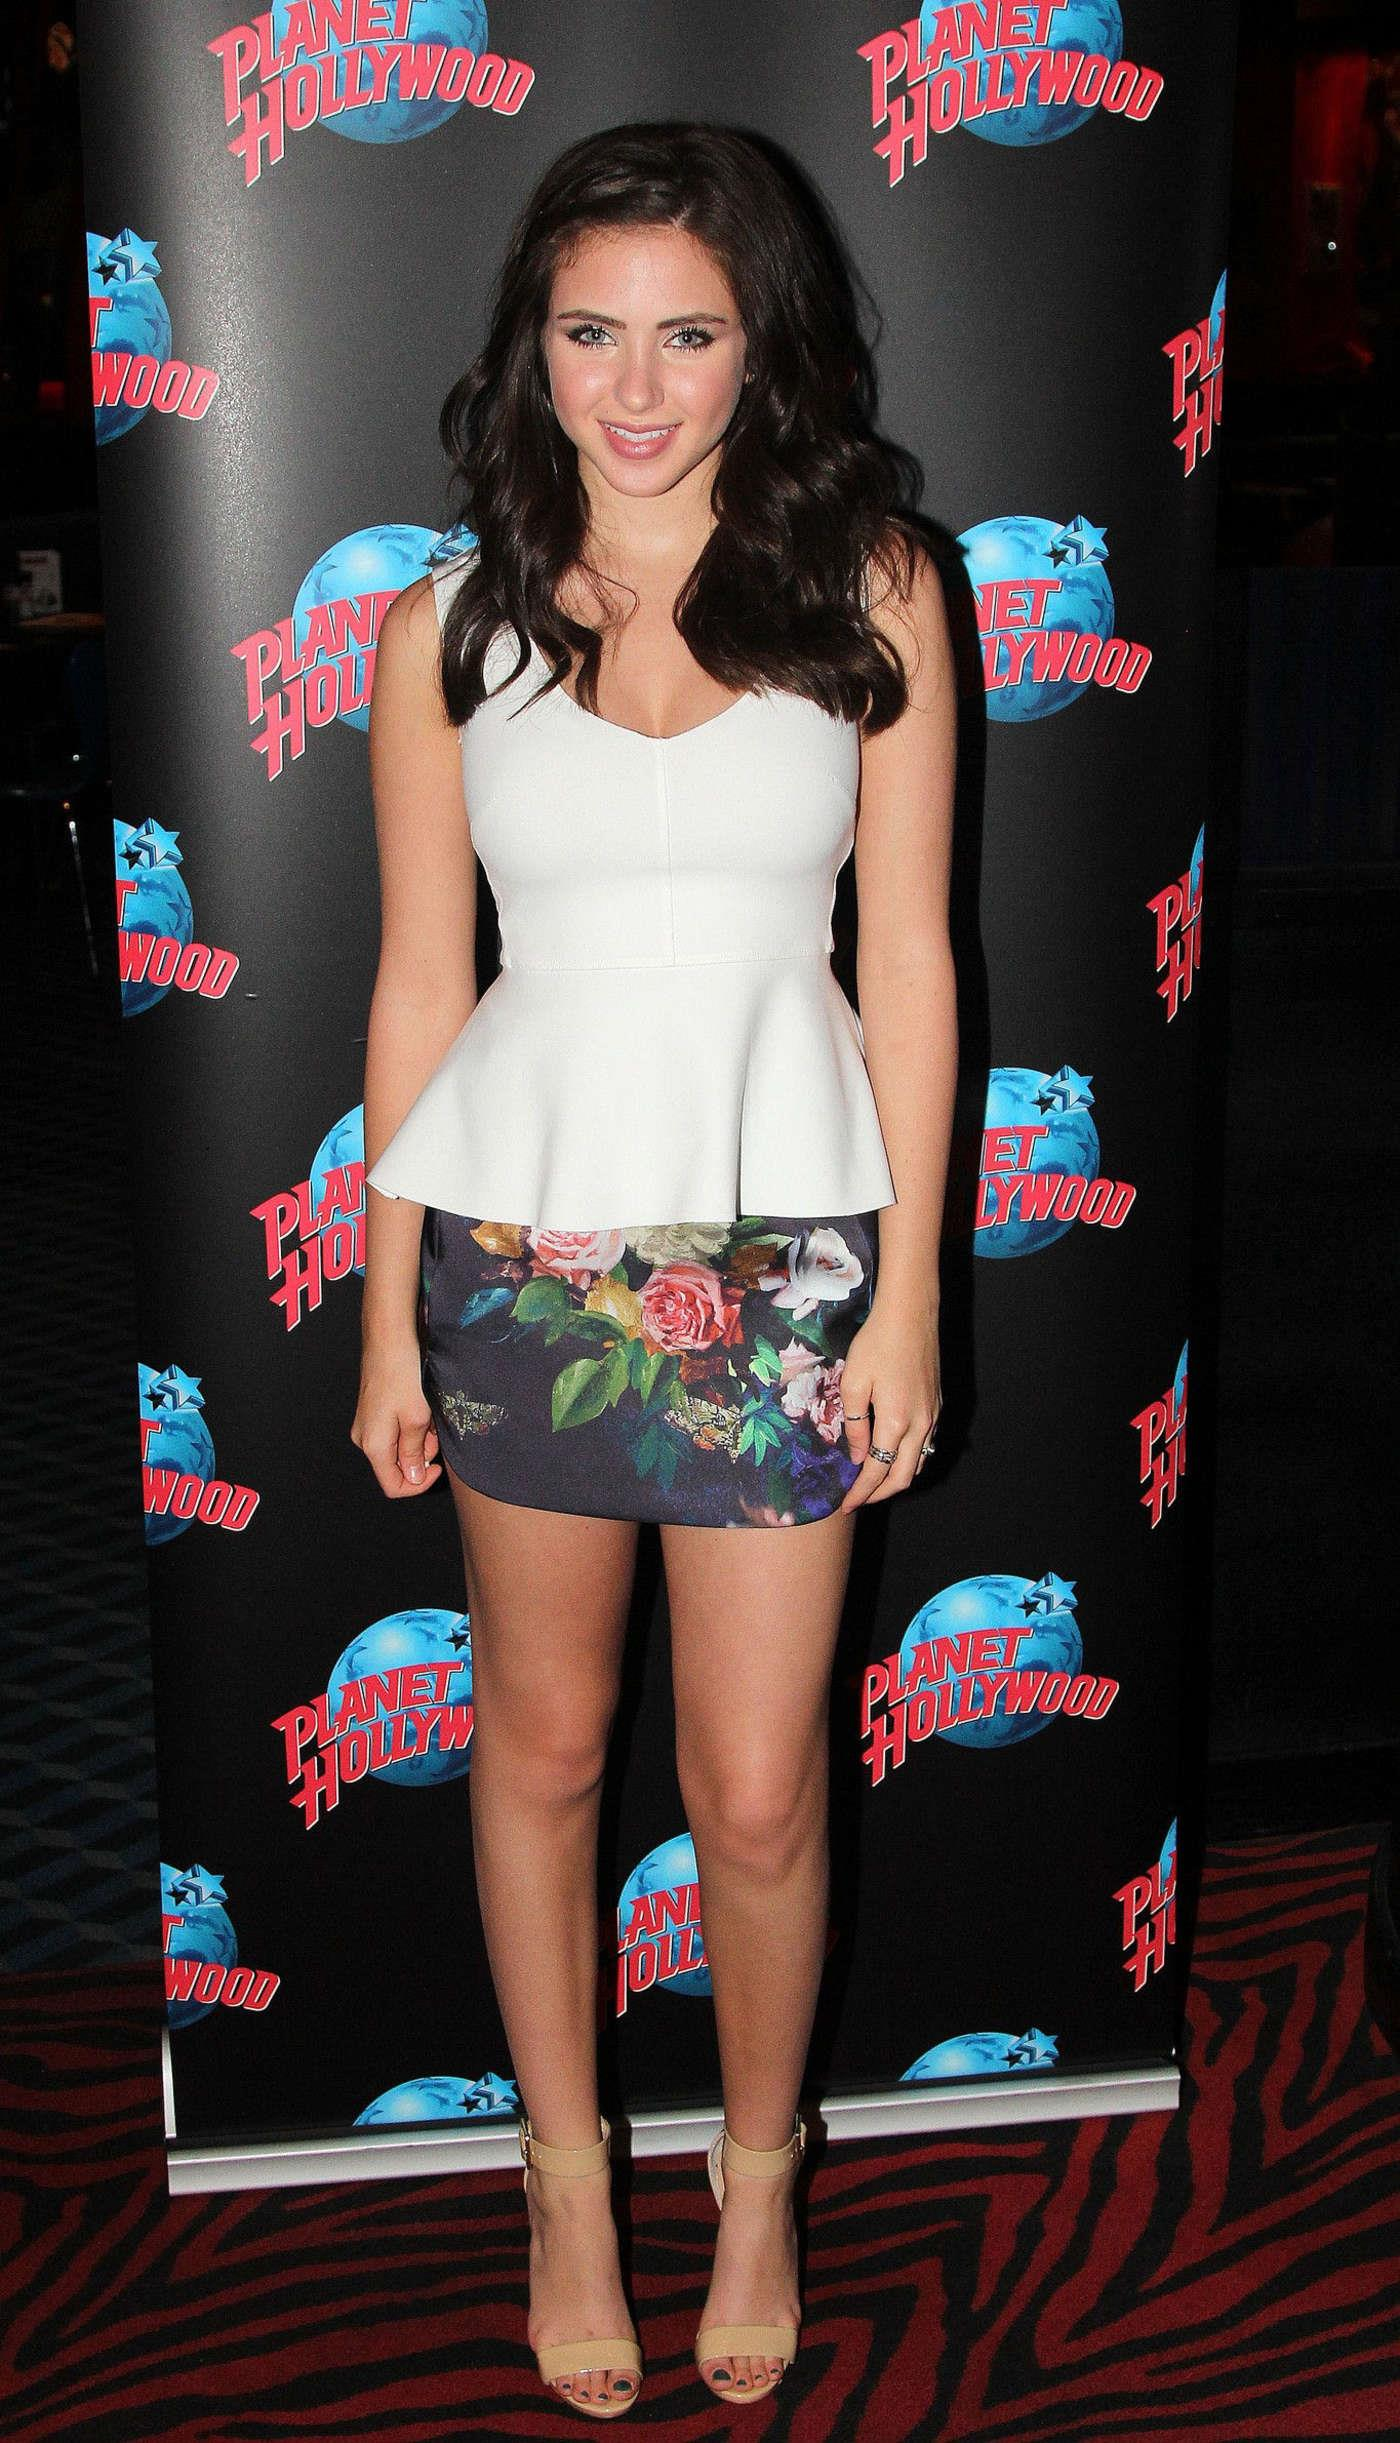 Cute Baby Feet Wallpaper Ryan Newman Planet Hollywood And Buca Di Beppo 12